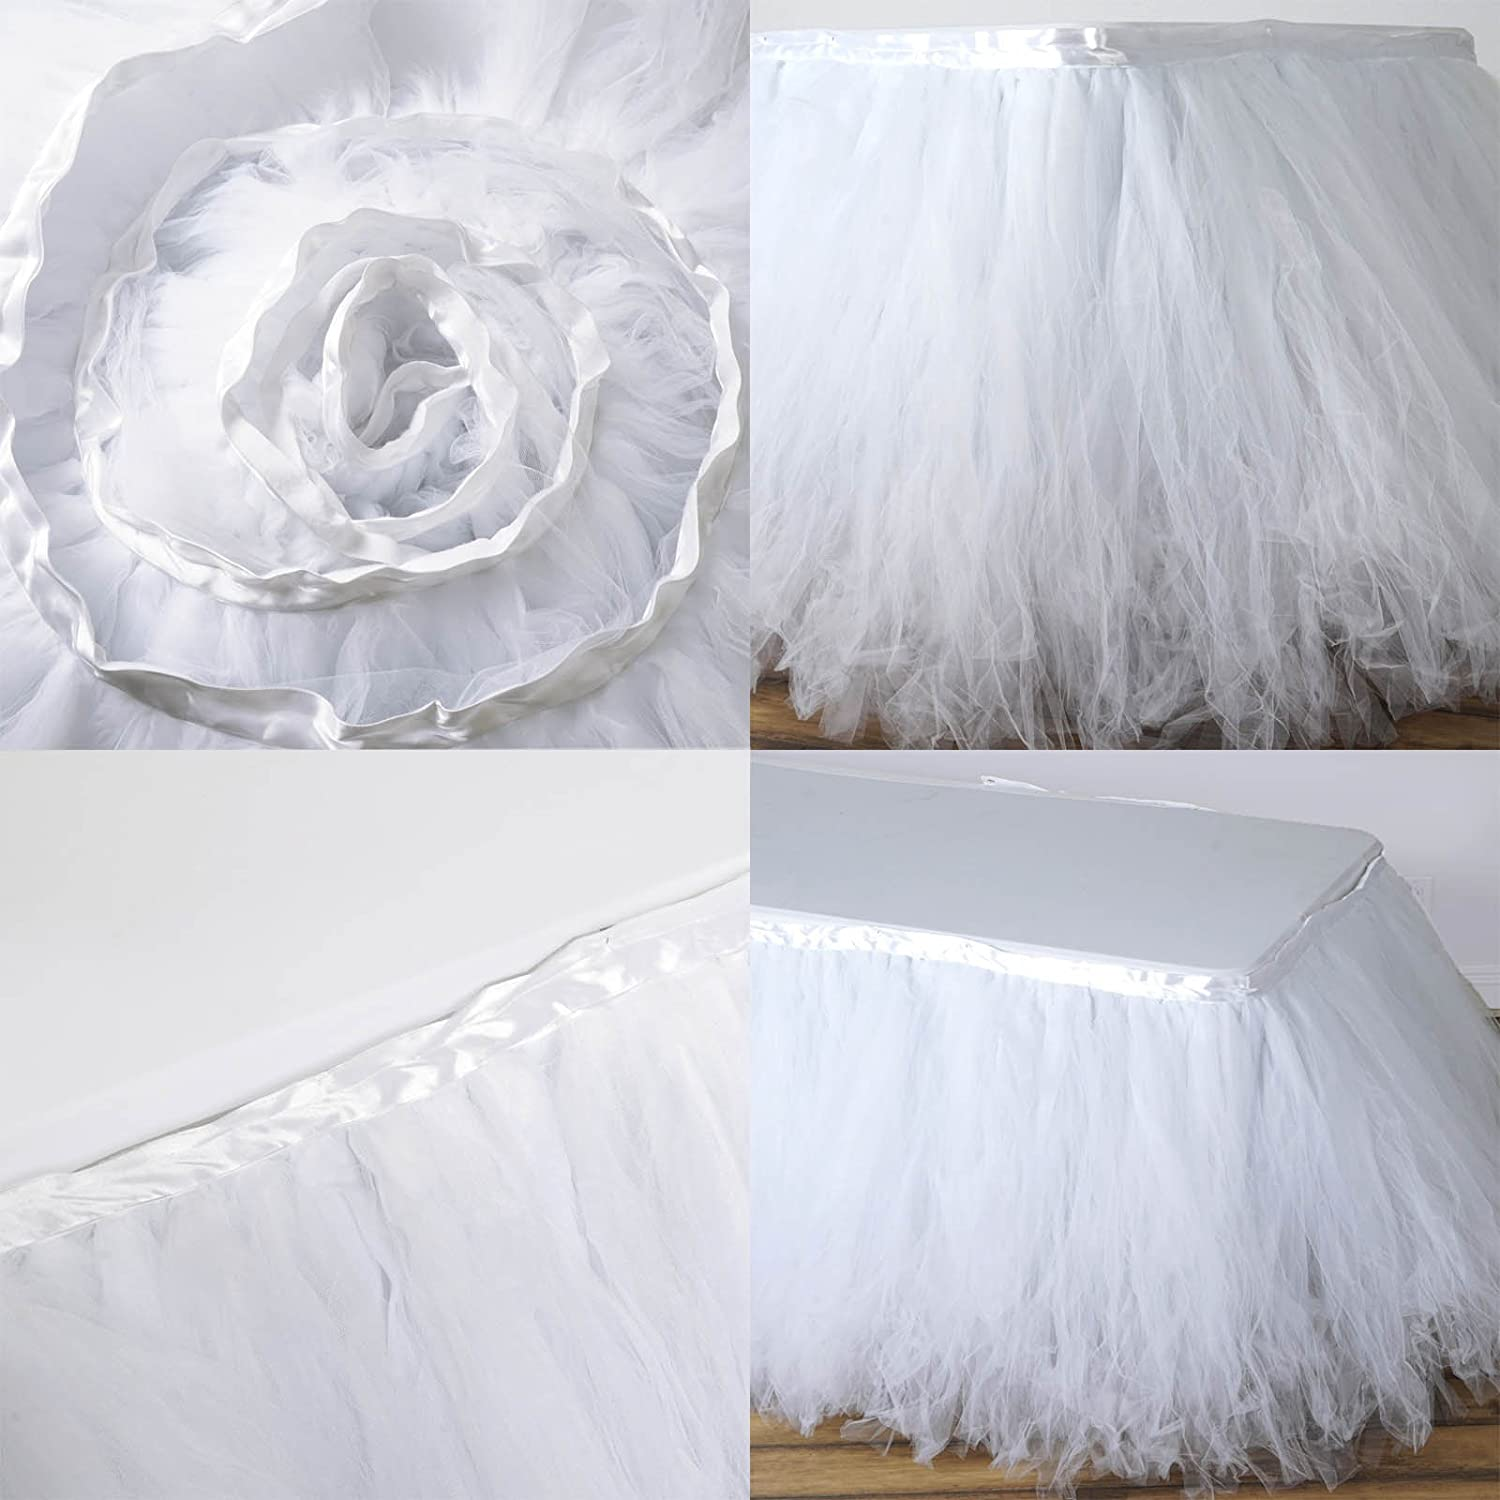 Efavormart 21ft FULL SIZE 8 Layer Fluffy Tulle Tutu Table Skirt for Dining Catering Wedding Birthday Party Events Serenity Blue